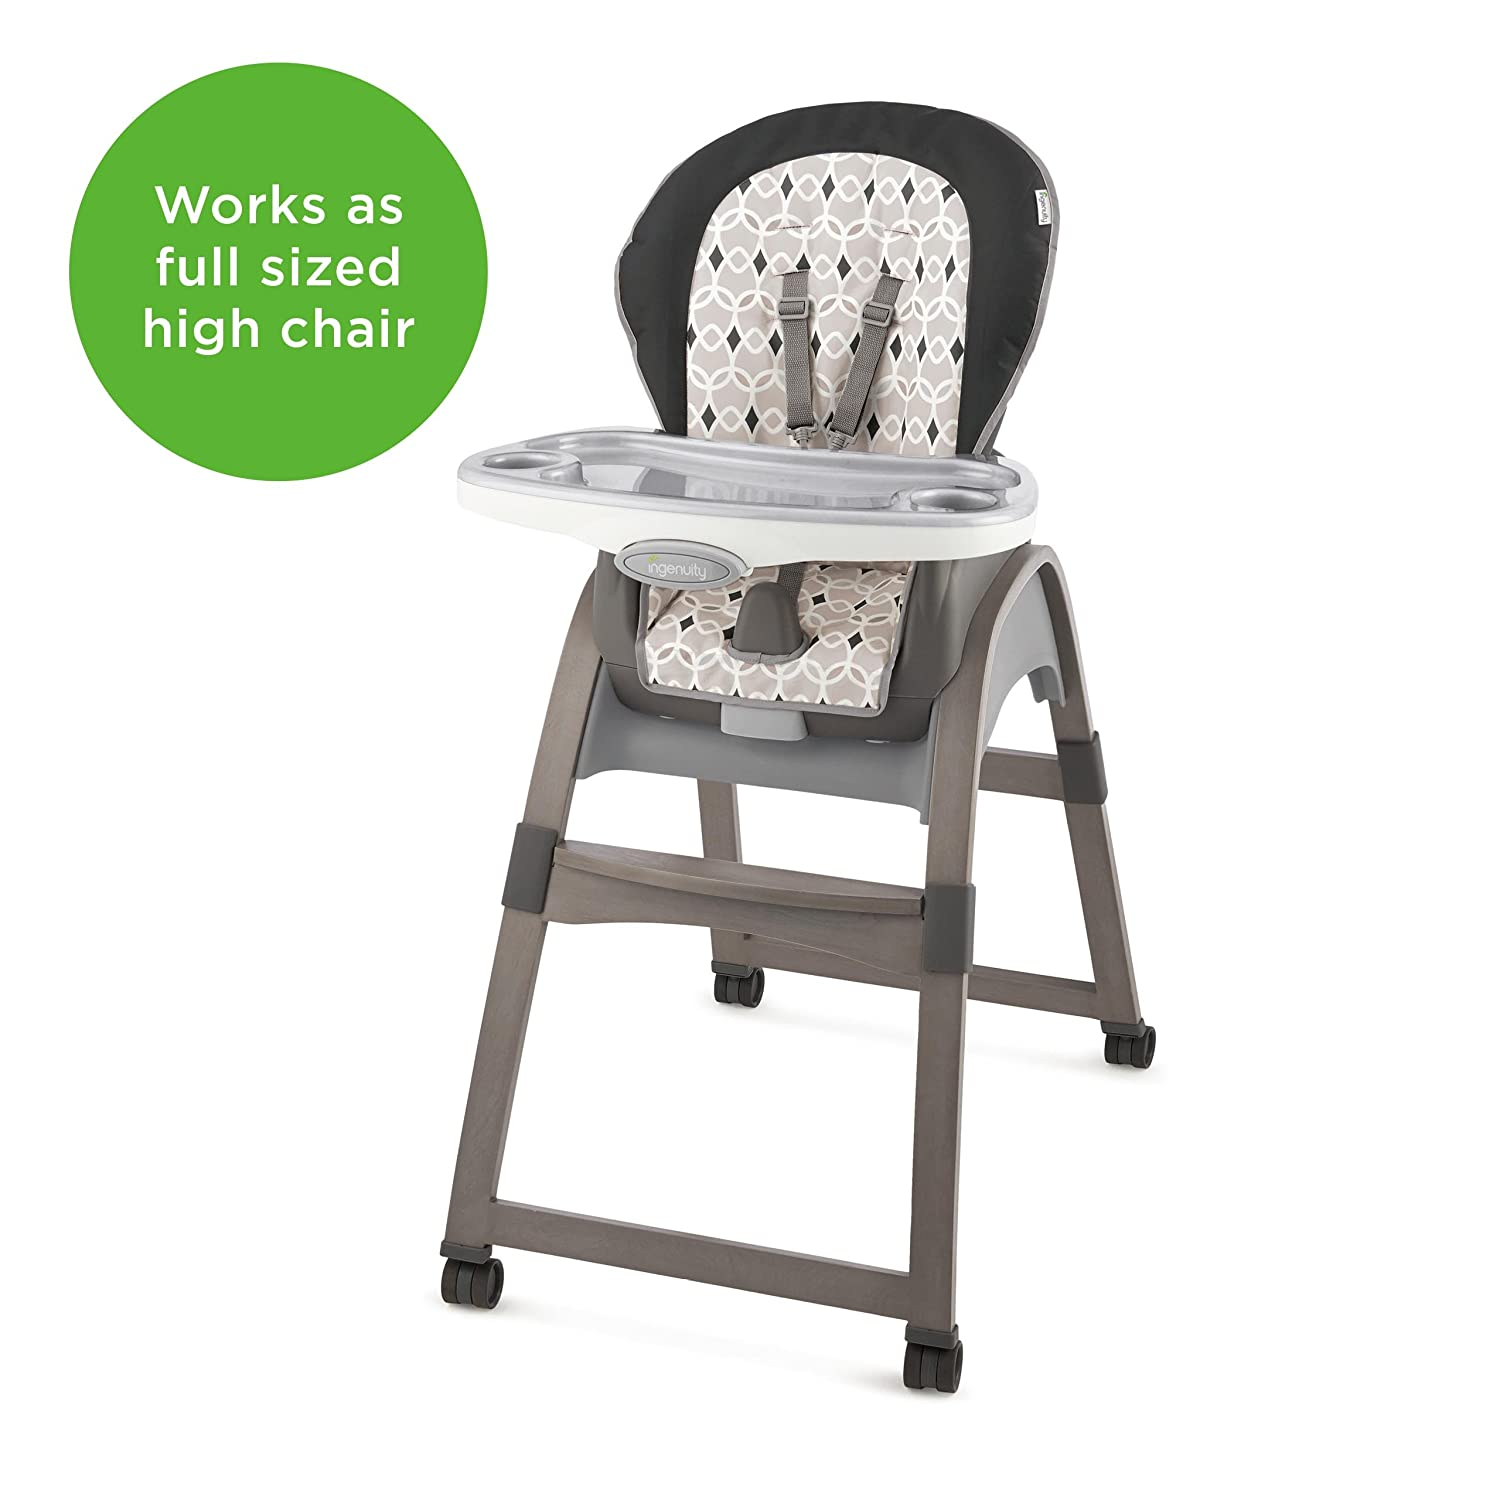 Strange Ingenuity 3 In 1 Wood High Chair Ellison High Chair Toddler Chair And Booster Gmtry Best Dining Table And Chair Ideas Images Gmtryco